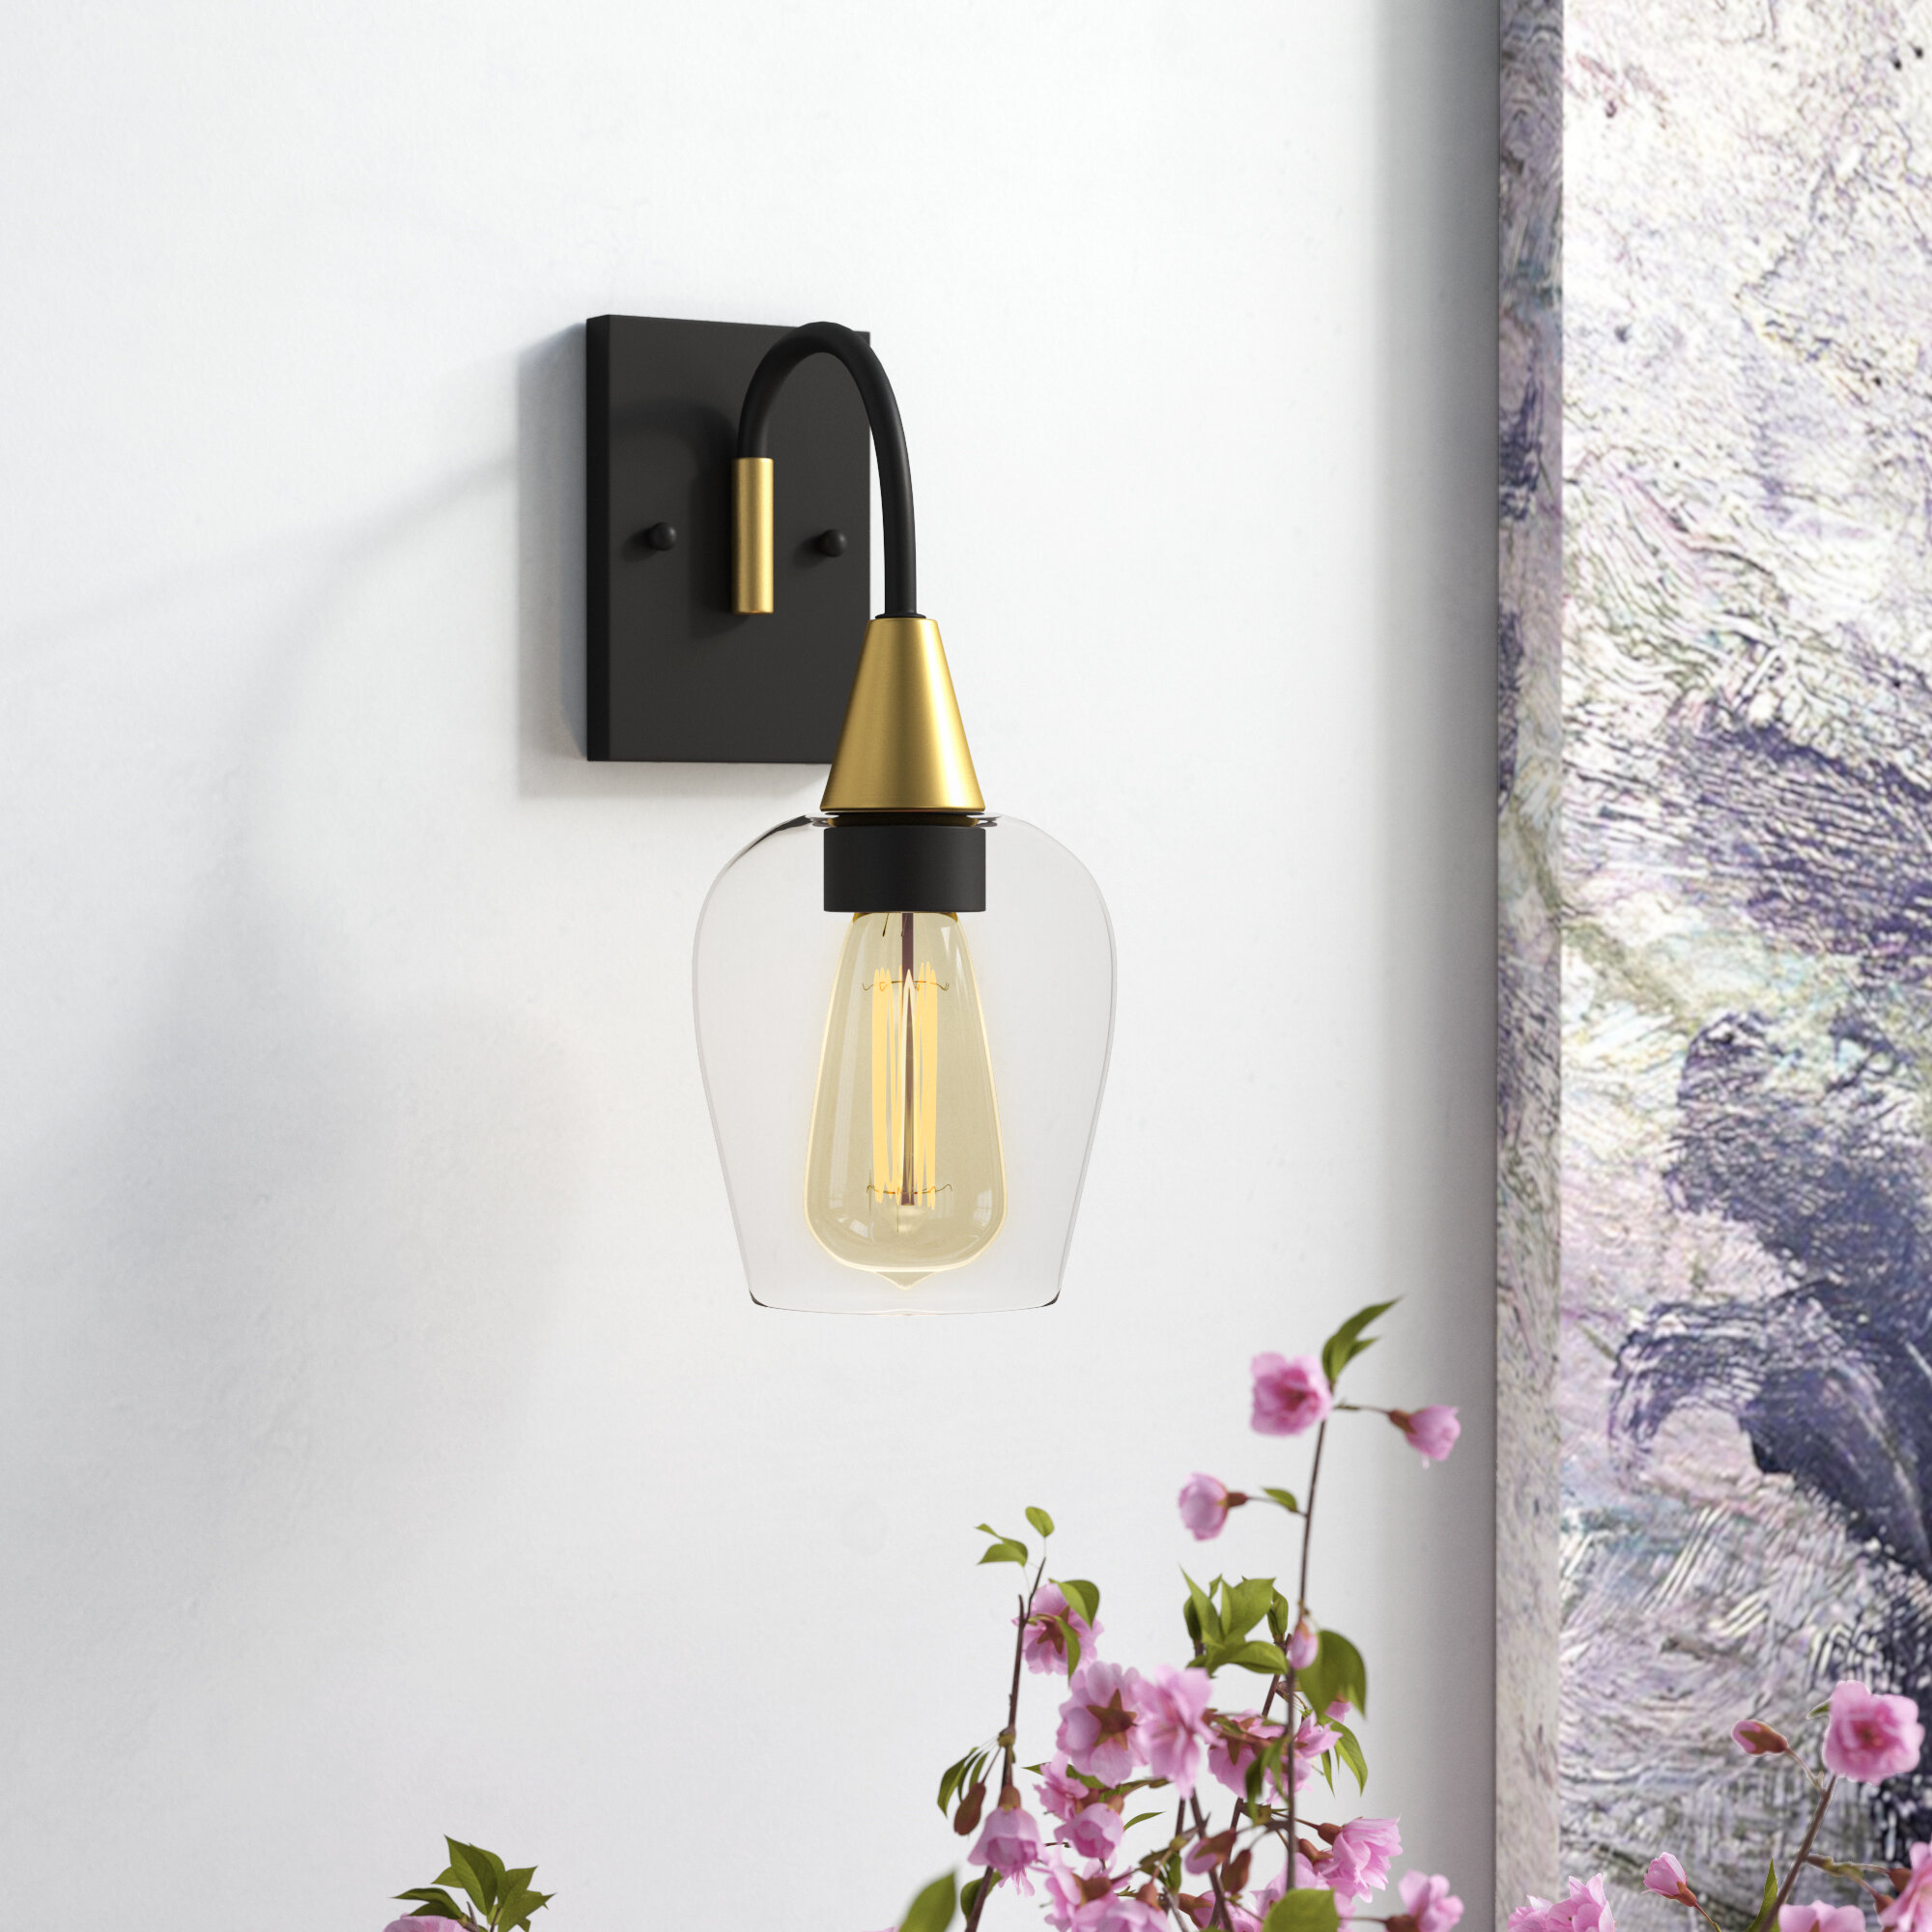 Mercer41 Yeager 1 Light Armed Sconce Wayfair Ca